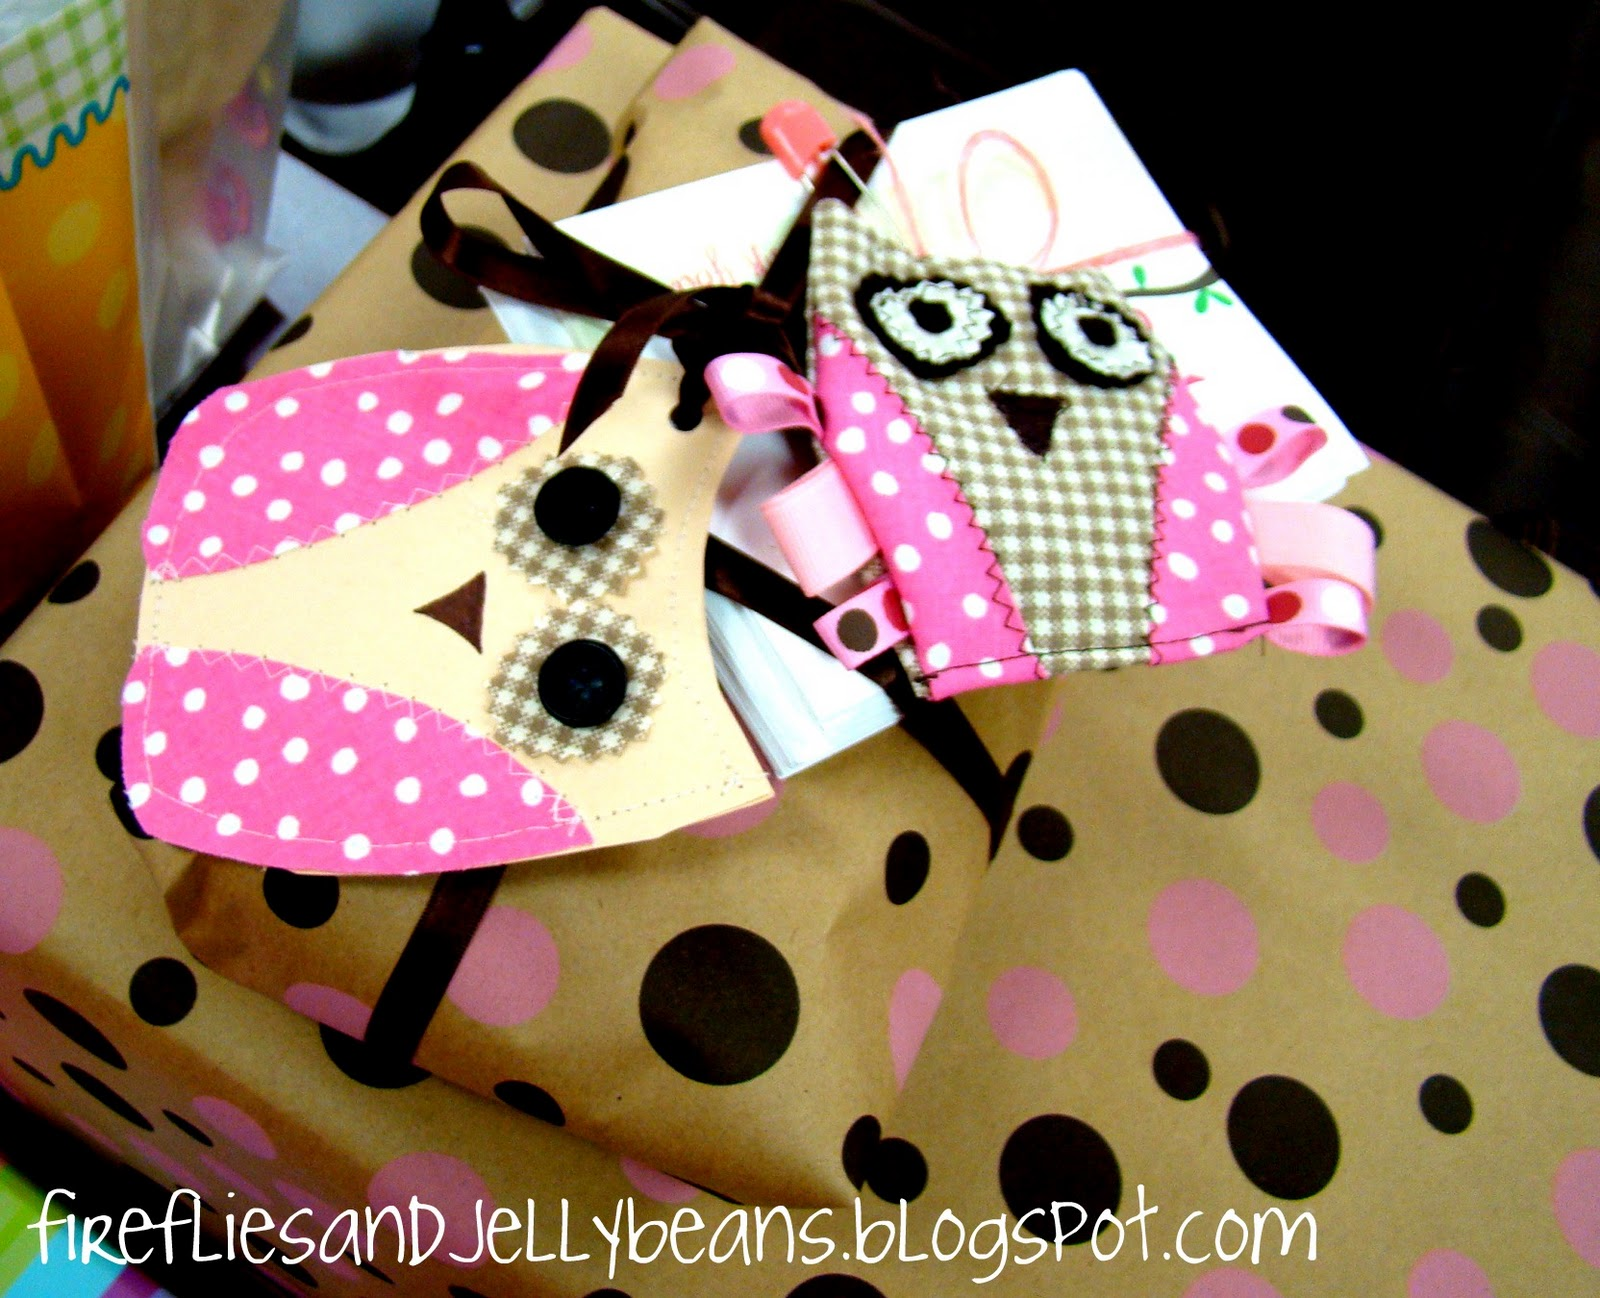 fireflies and jellybeans owl themed baby shower